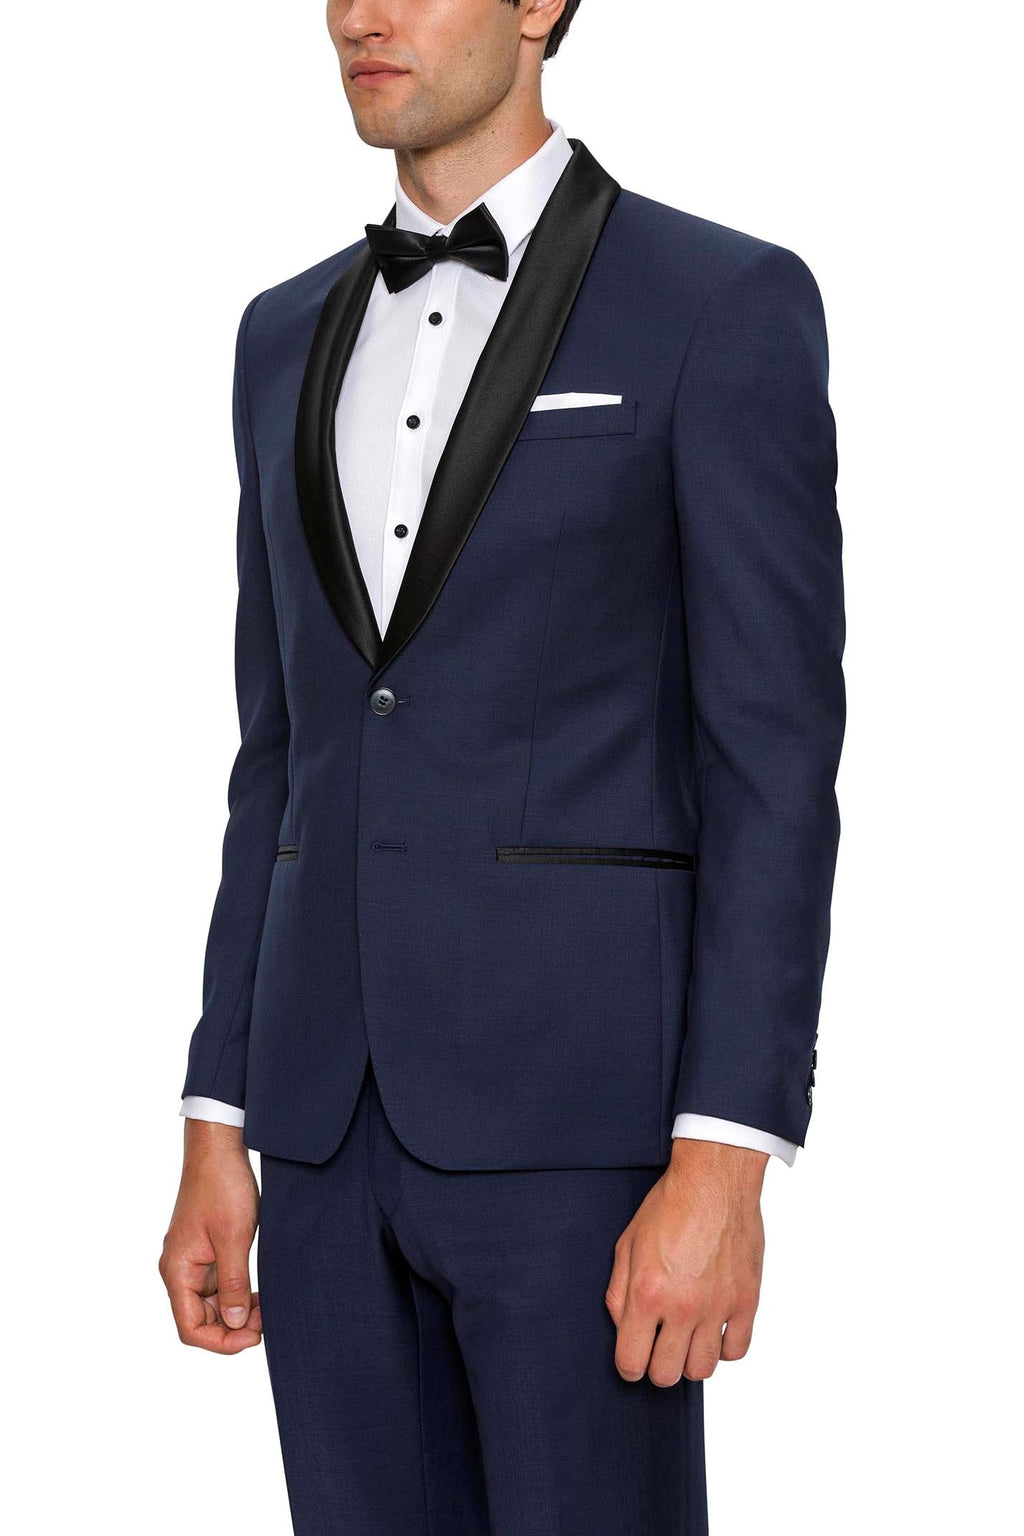 Gibson Spectre Navy 2pce Suit - Ignition For Men